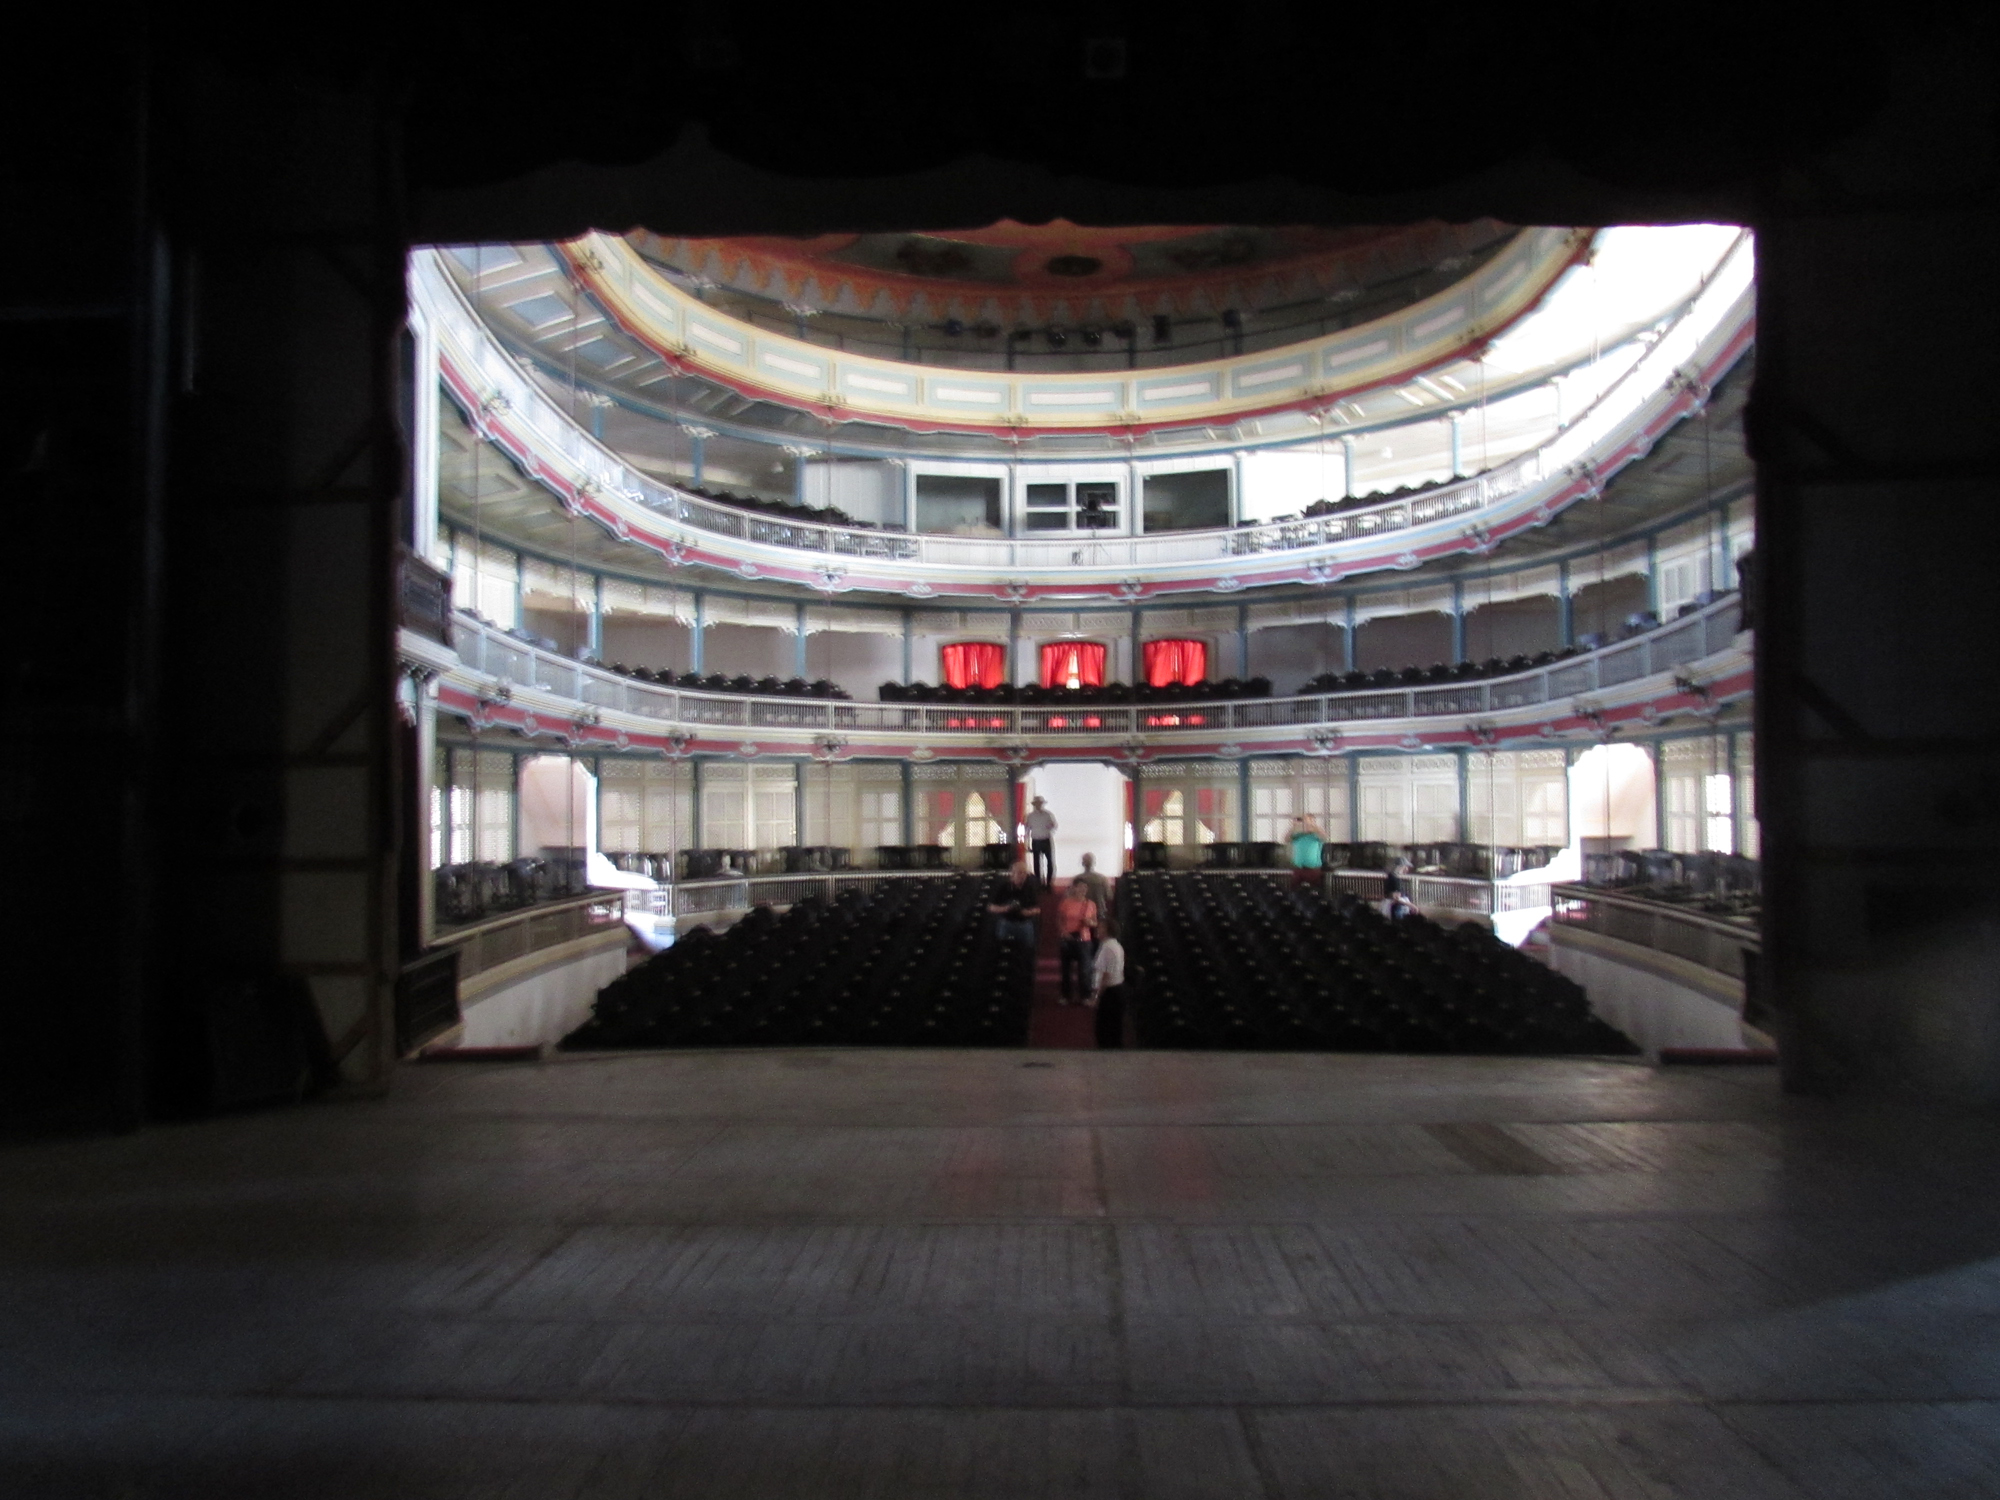 Looking from the back of the Teatro La Caridad